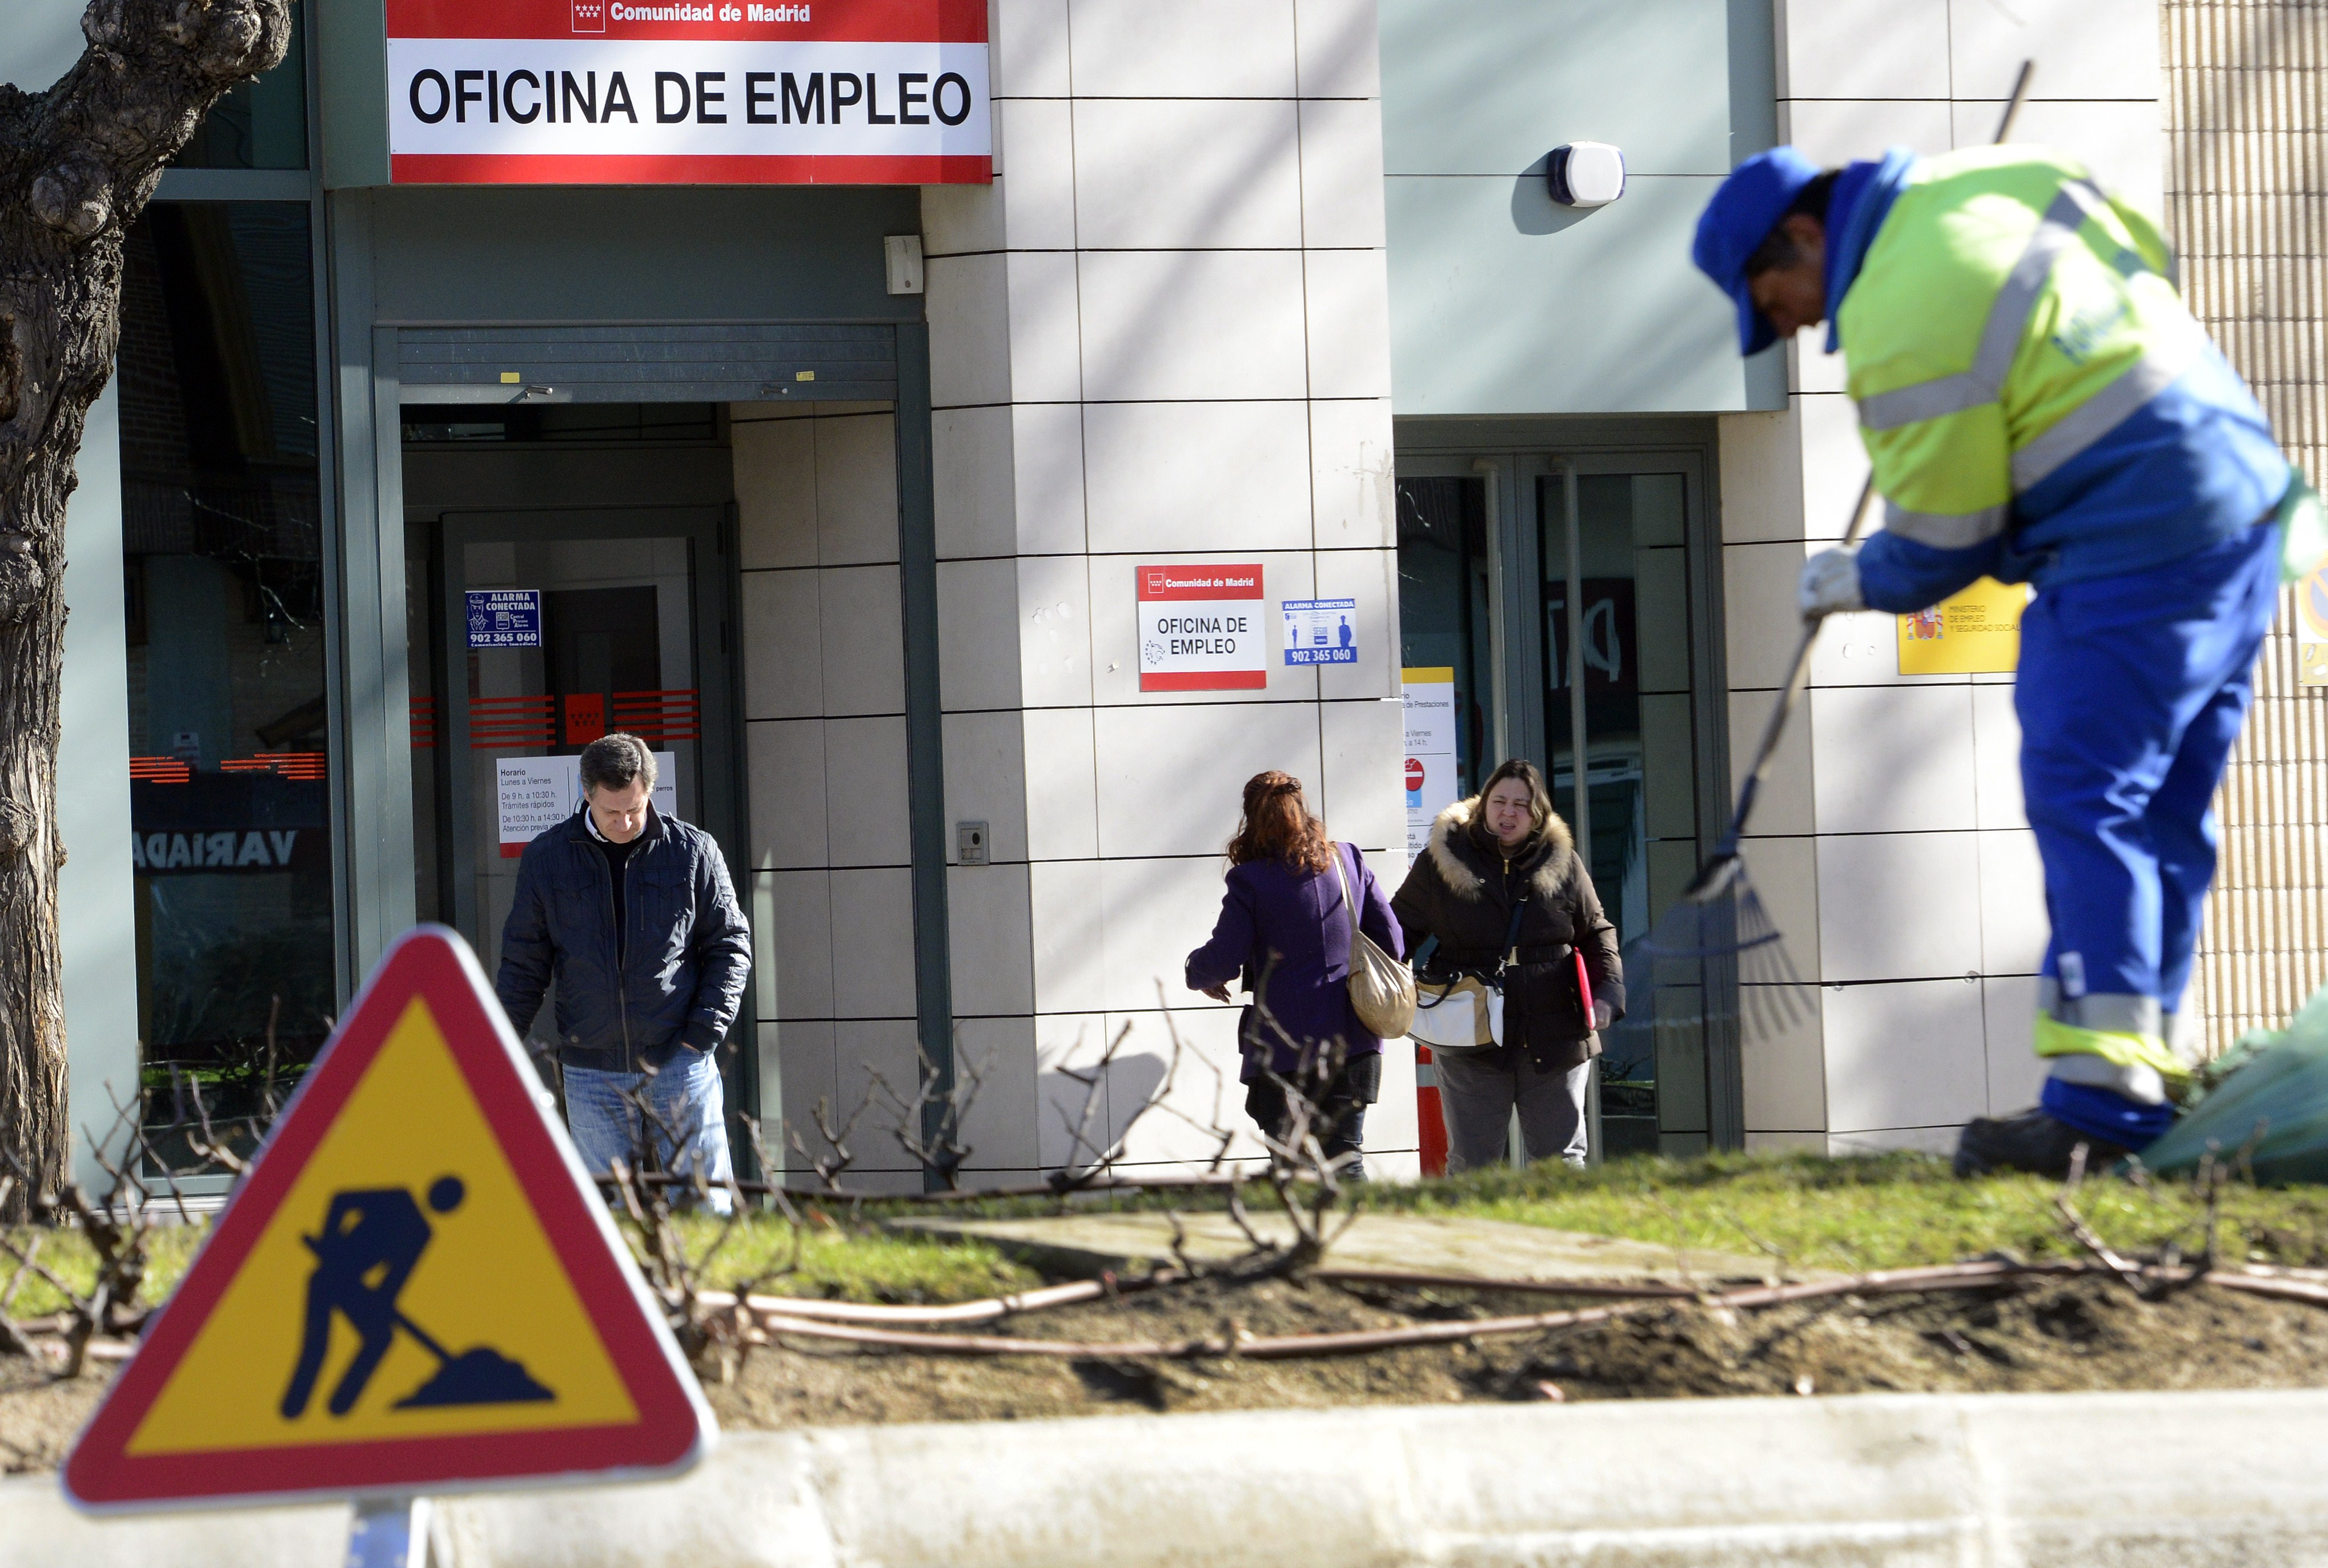 A municipal worker cleans the ground as people walk outside a government employment office in Madrid on January 23, 2014.